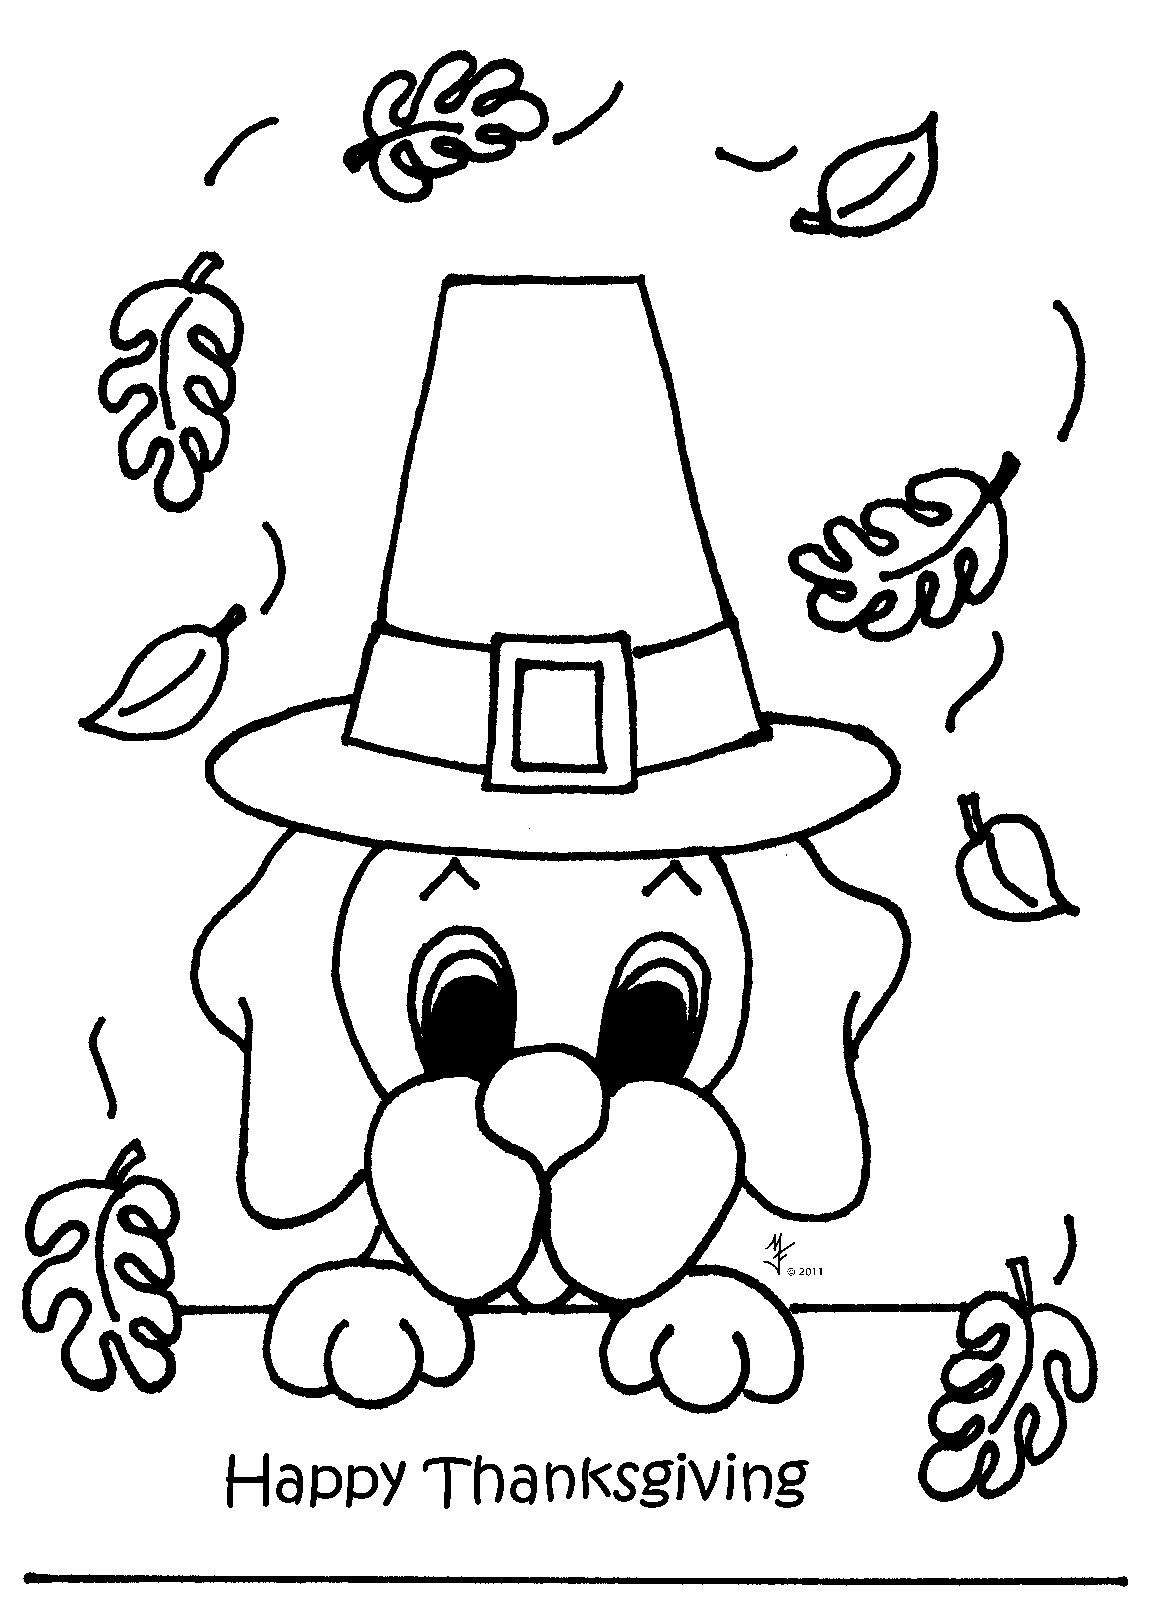 Thanksgiving Coloring Pages For Boys Coloring Ideas Cute Thanksgiving Coloringes For Kids With